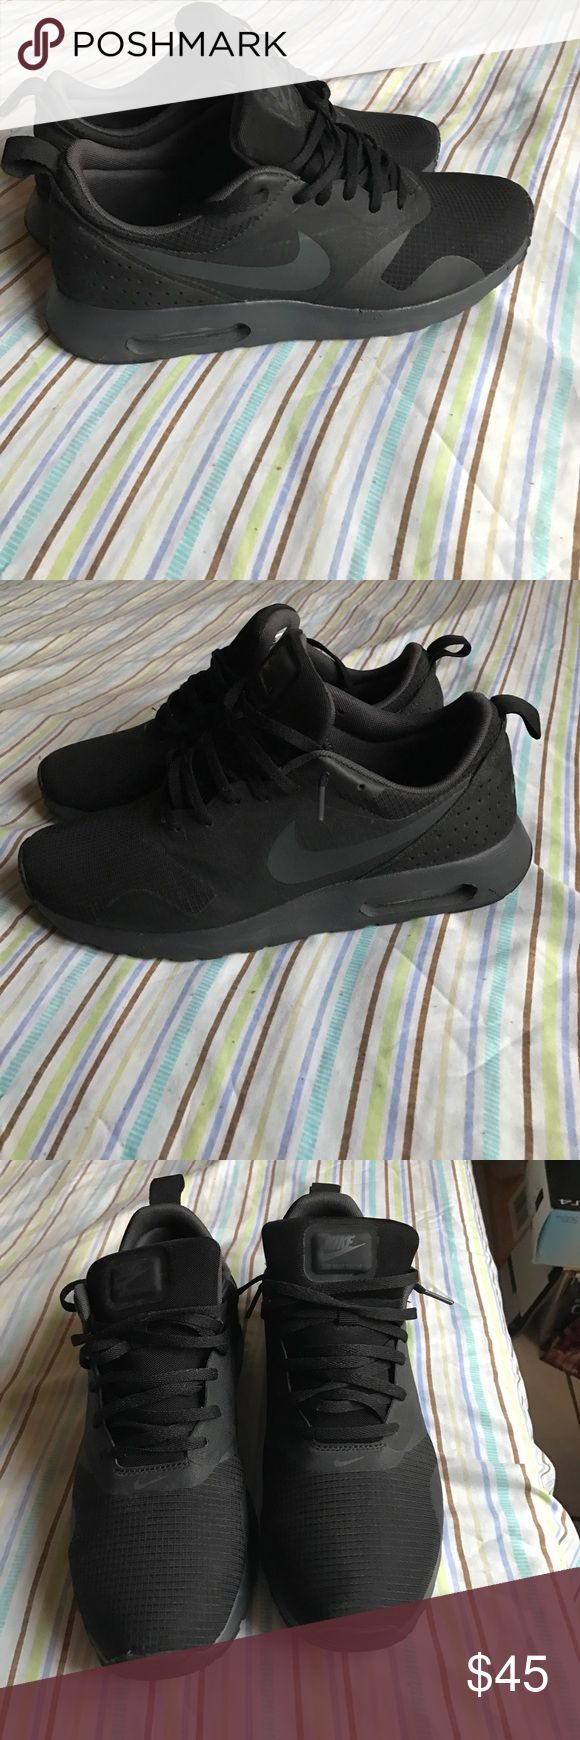 Nike Air Max Tavas (Black) Nike Air Max Tavas black. In Excellent condition. Only Worn Twice. Nike Shoes Athletic Shoes